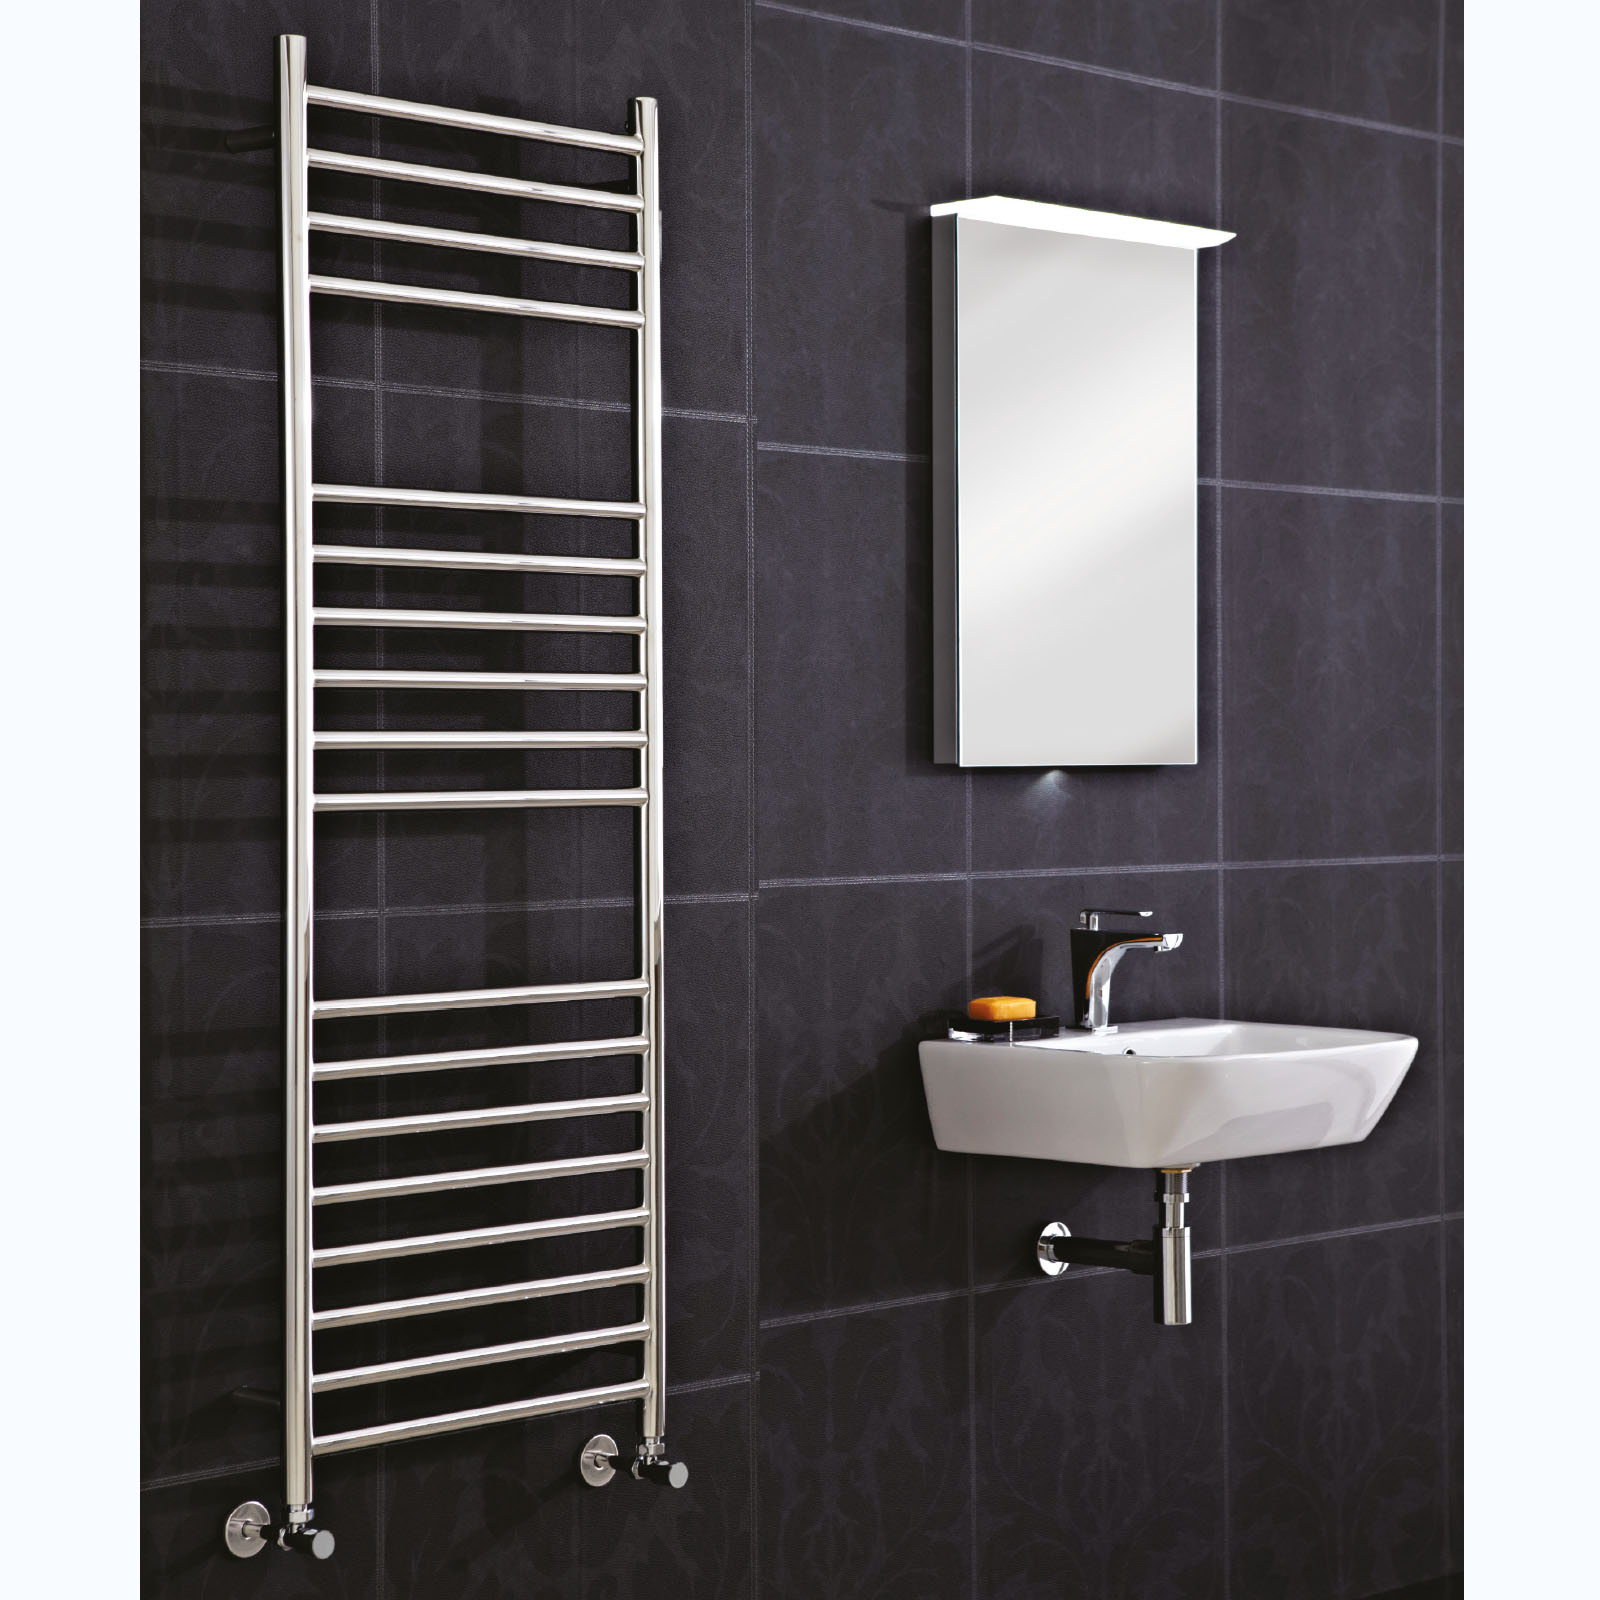 Oil filled electric towel rails for bathrooms - Phoenix Athena Pre Filled Electric Stainless Steel Towel Rail